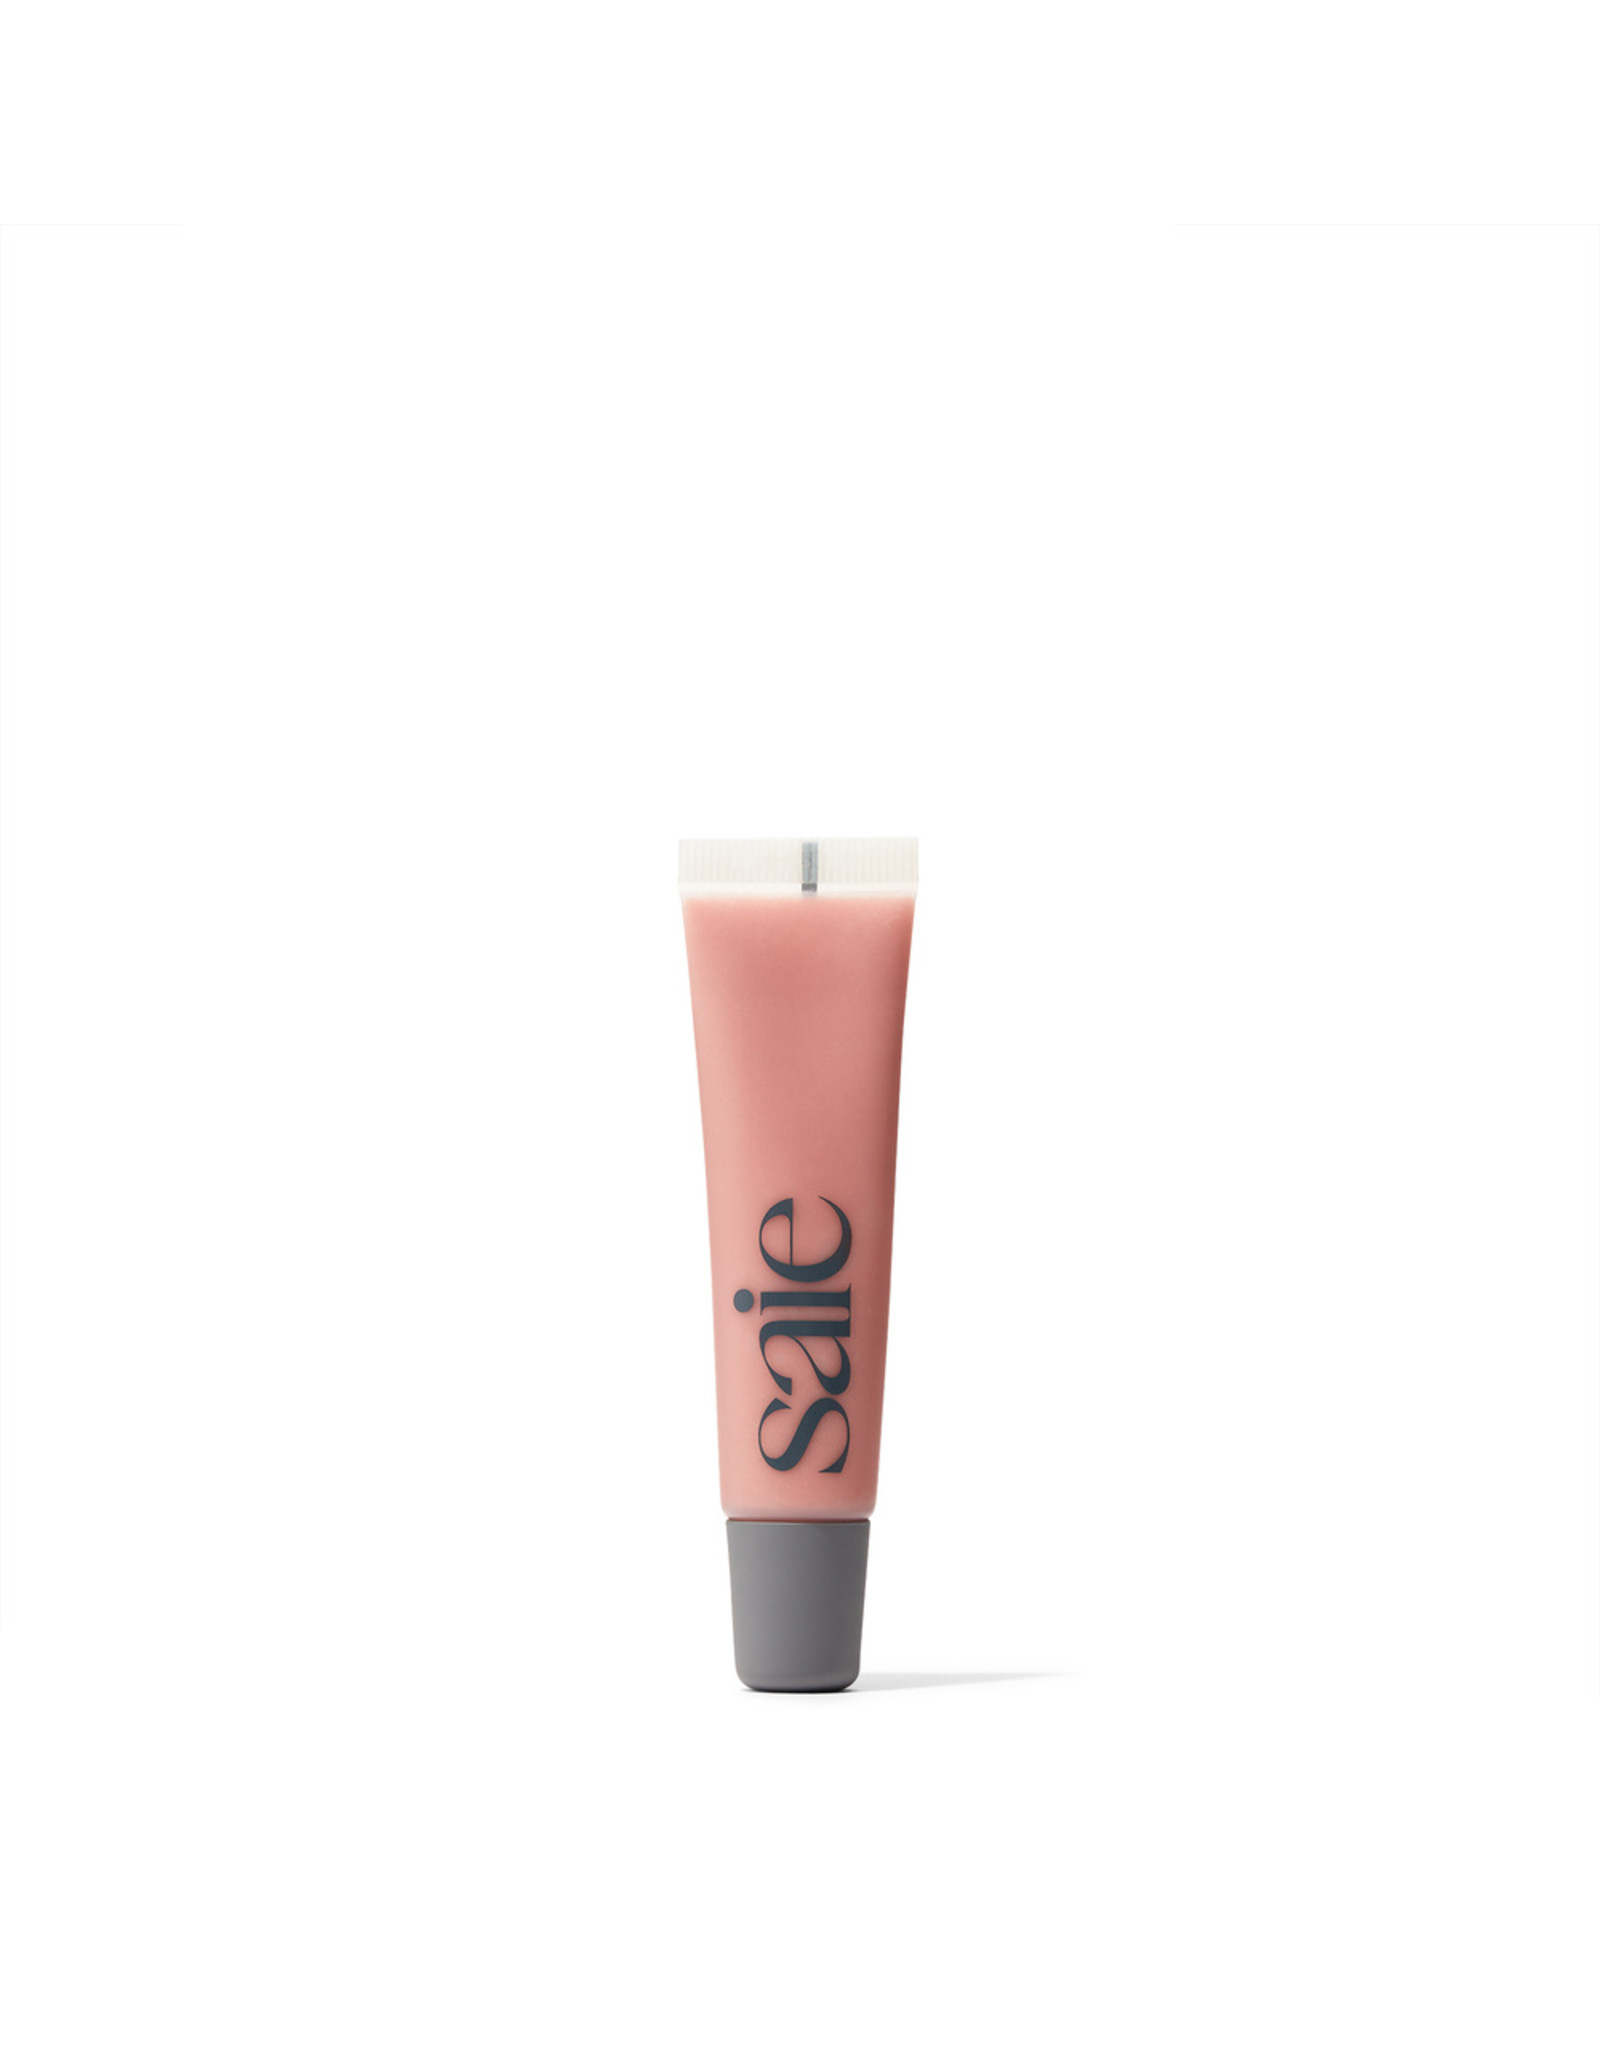 Saie Saie Liquid Lip Balm